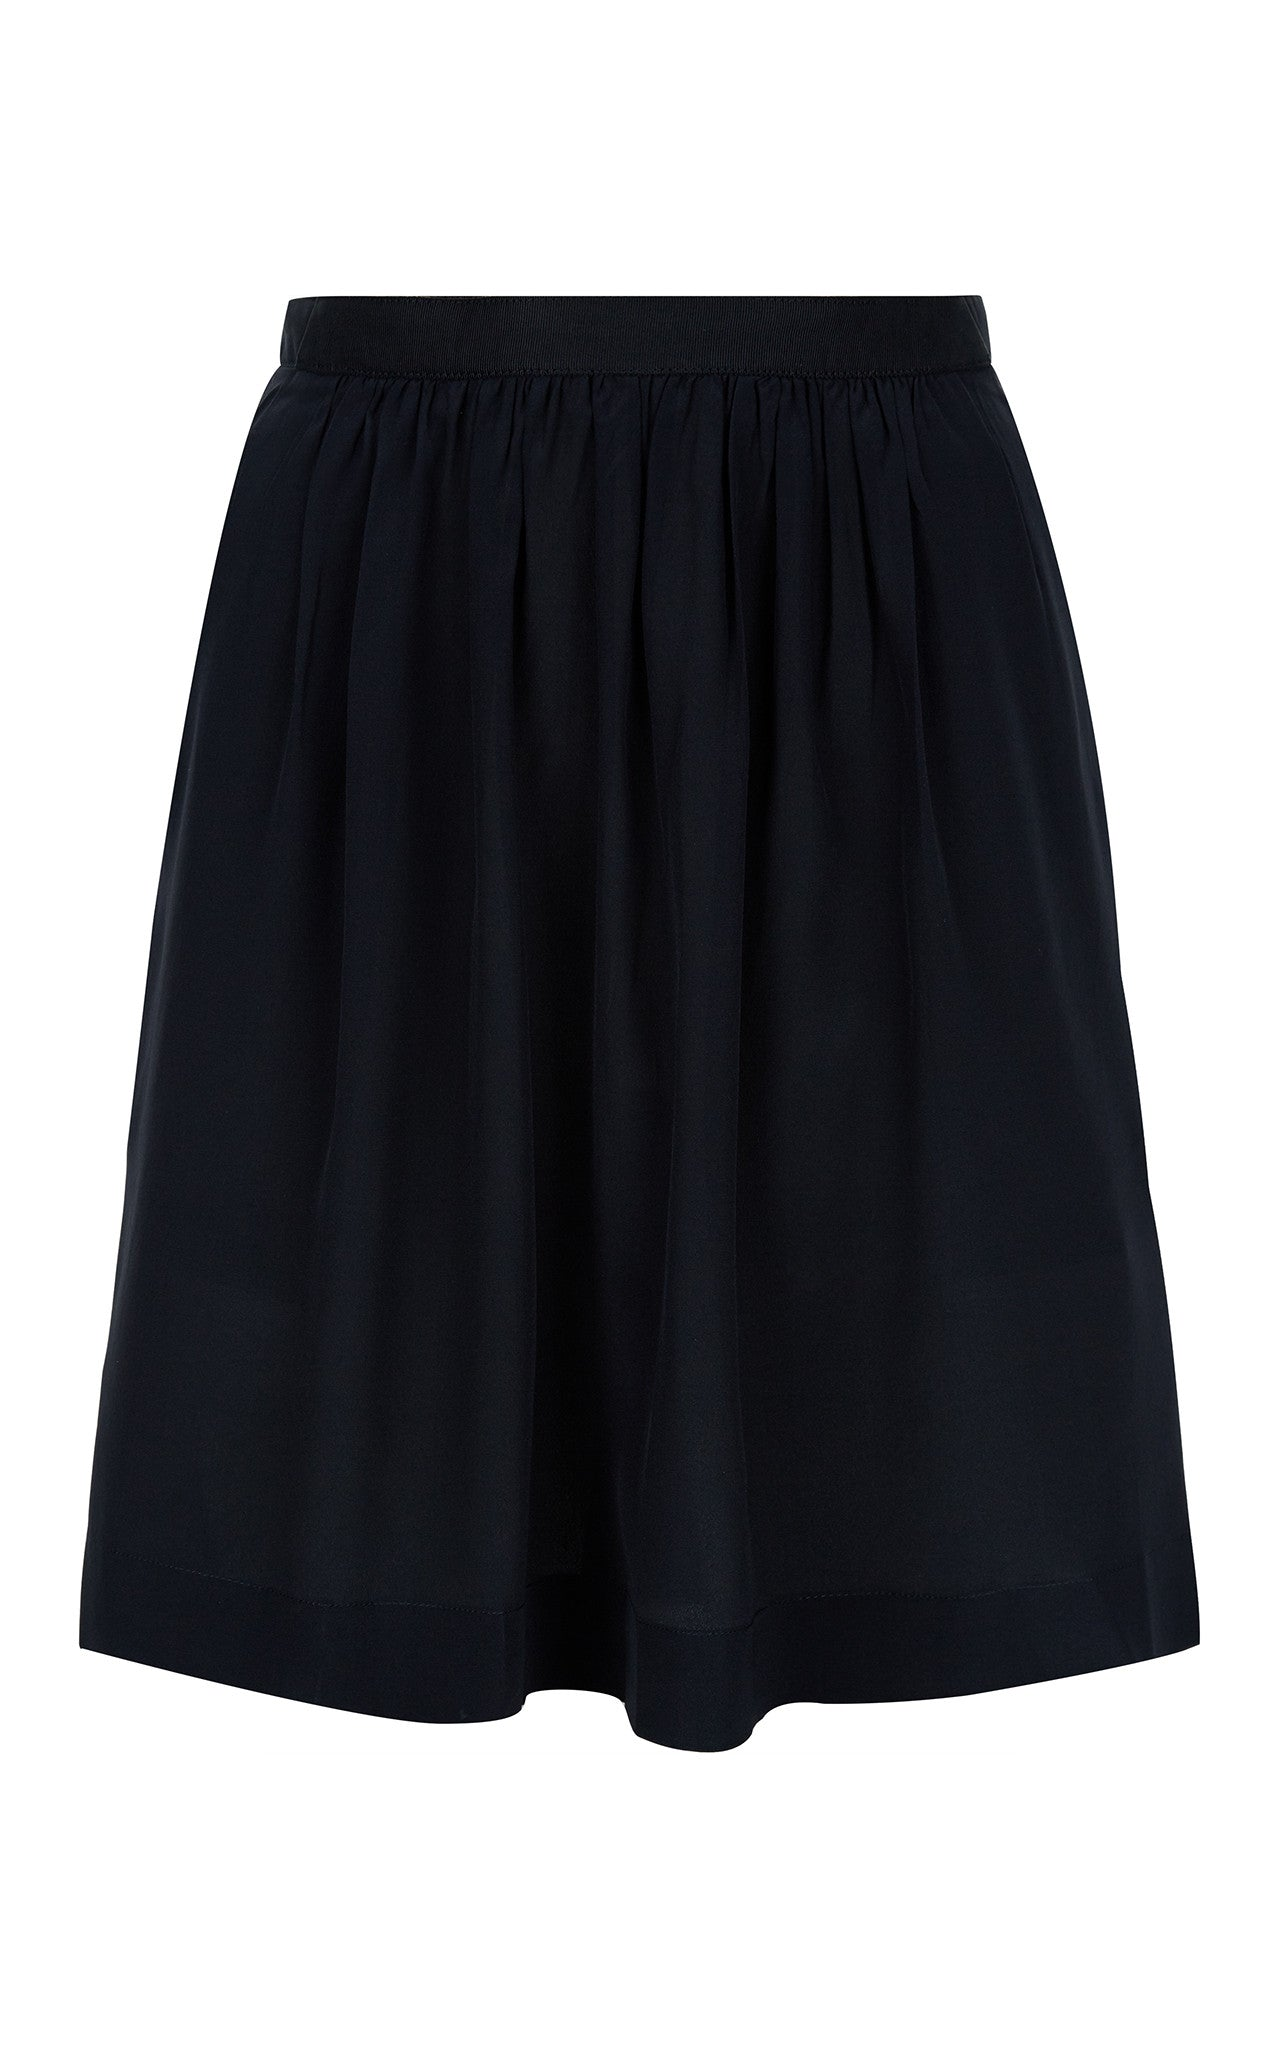 Antipodium Cosmic Black Silk Skirt Limited Edition Front